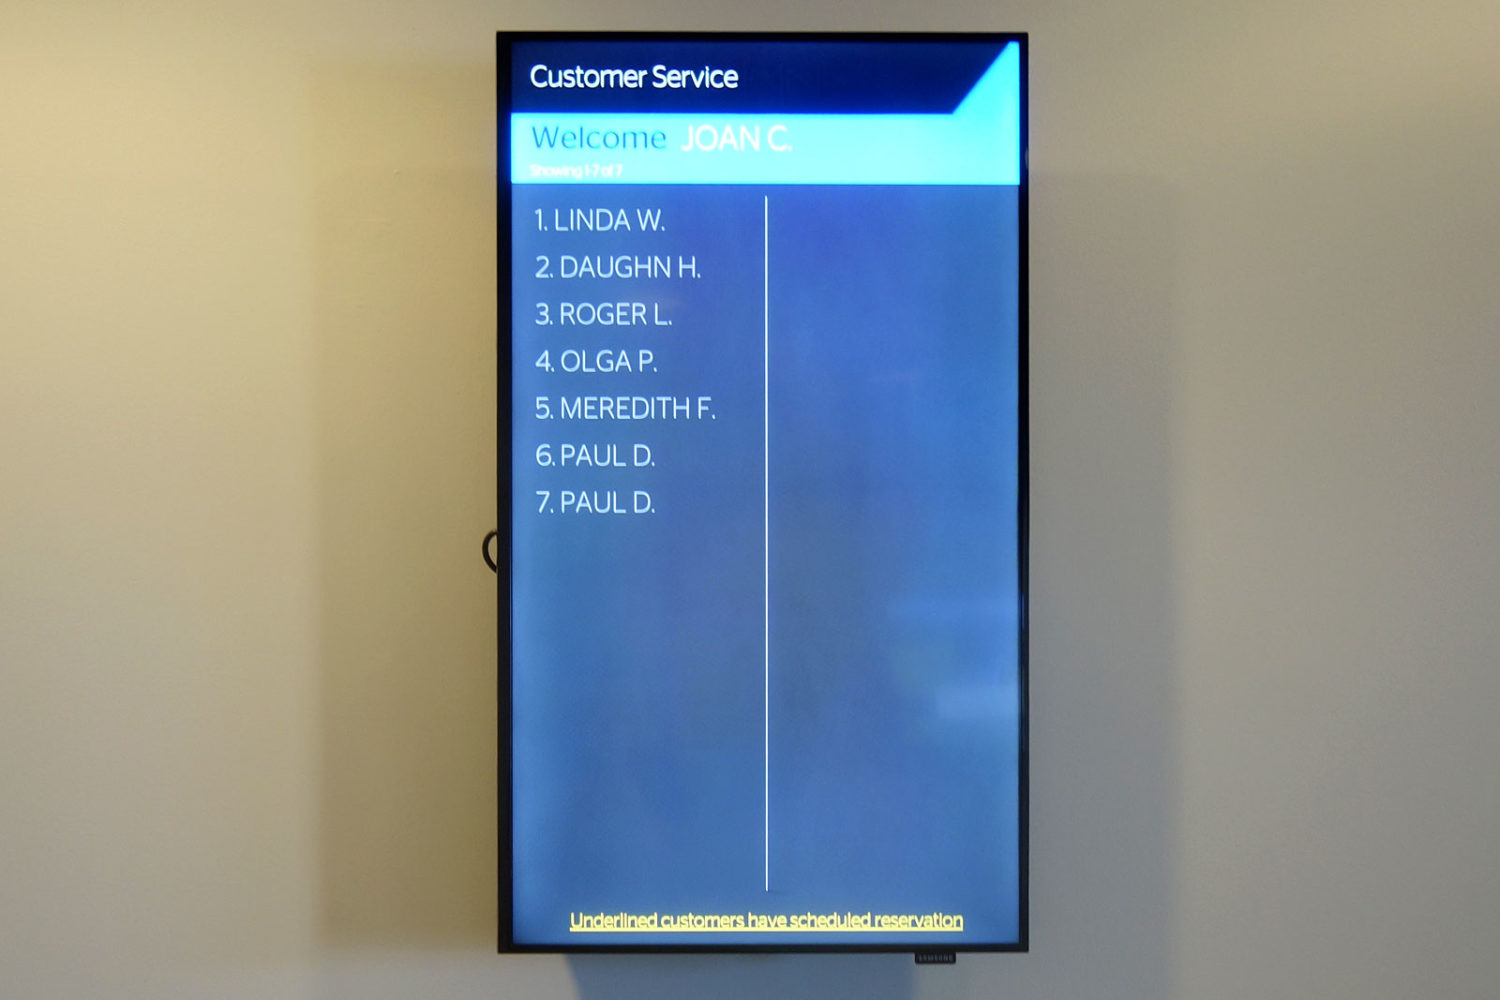 Sign-in board at Spectrum TV customer service